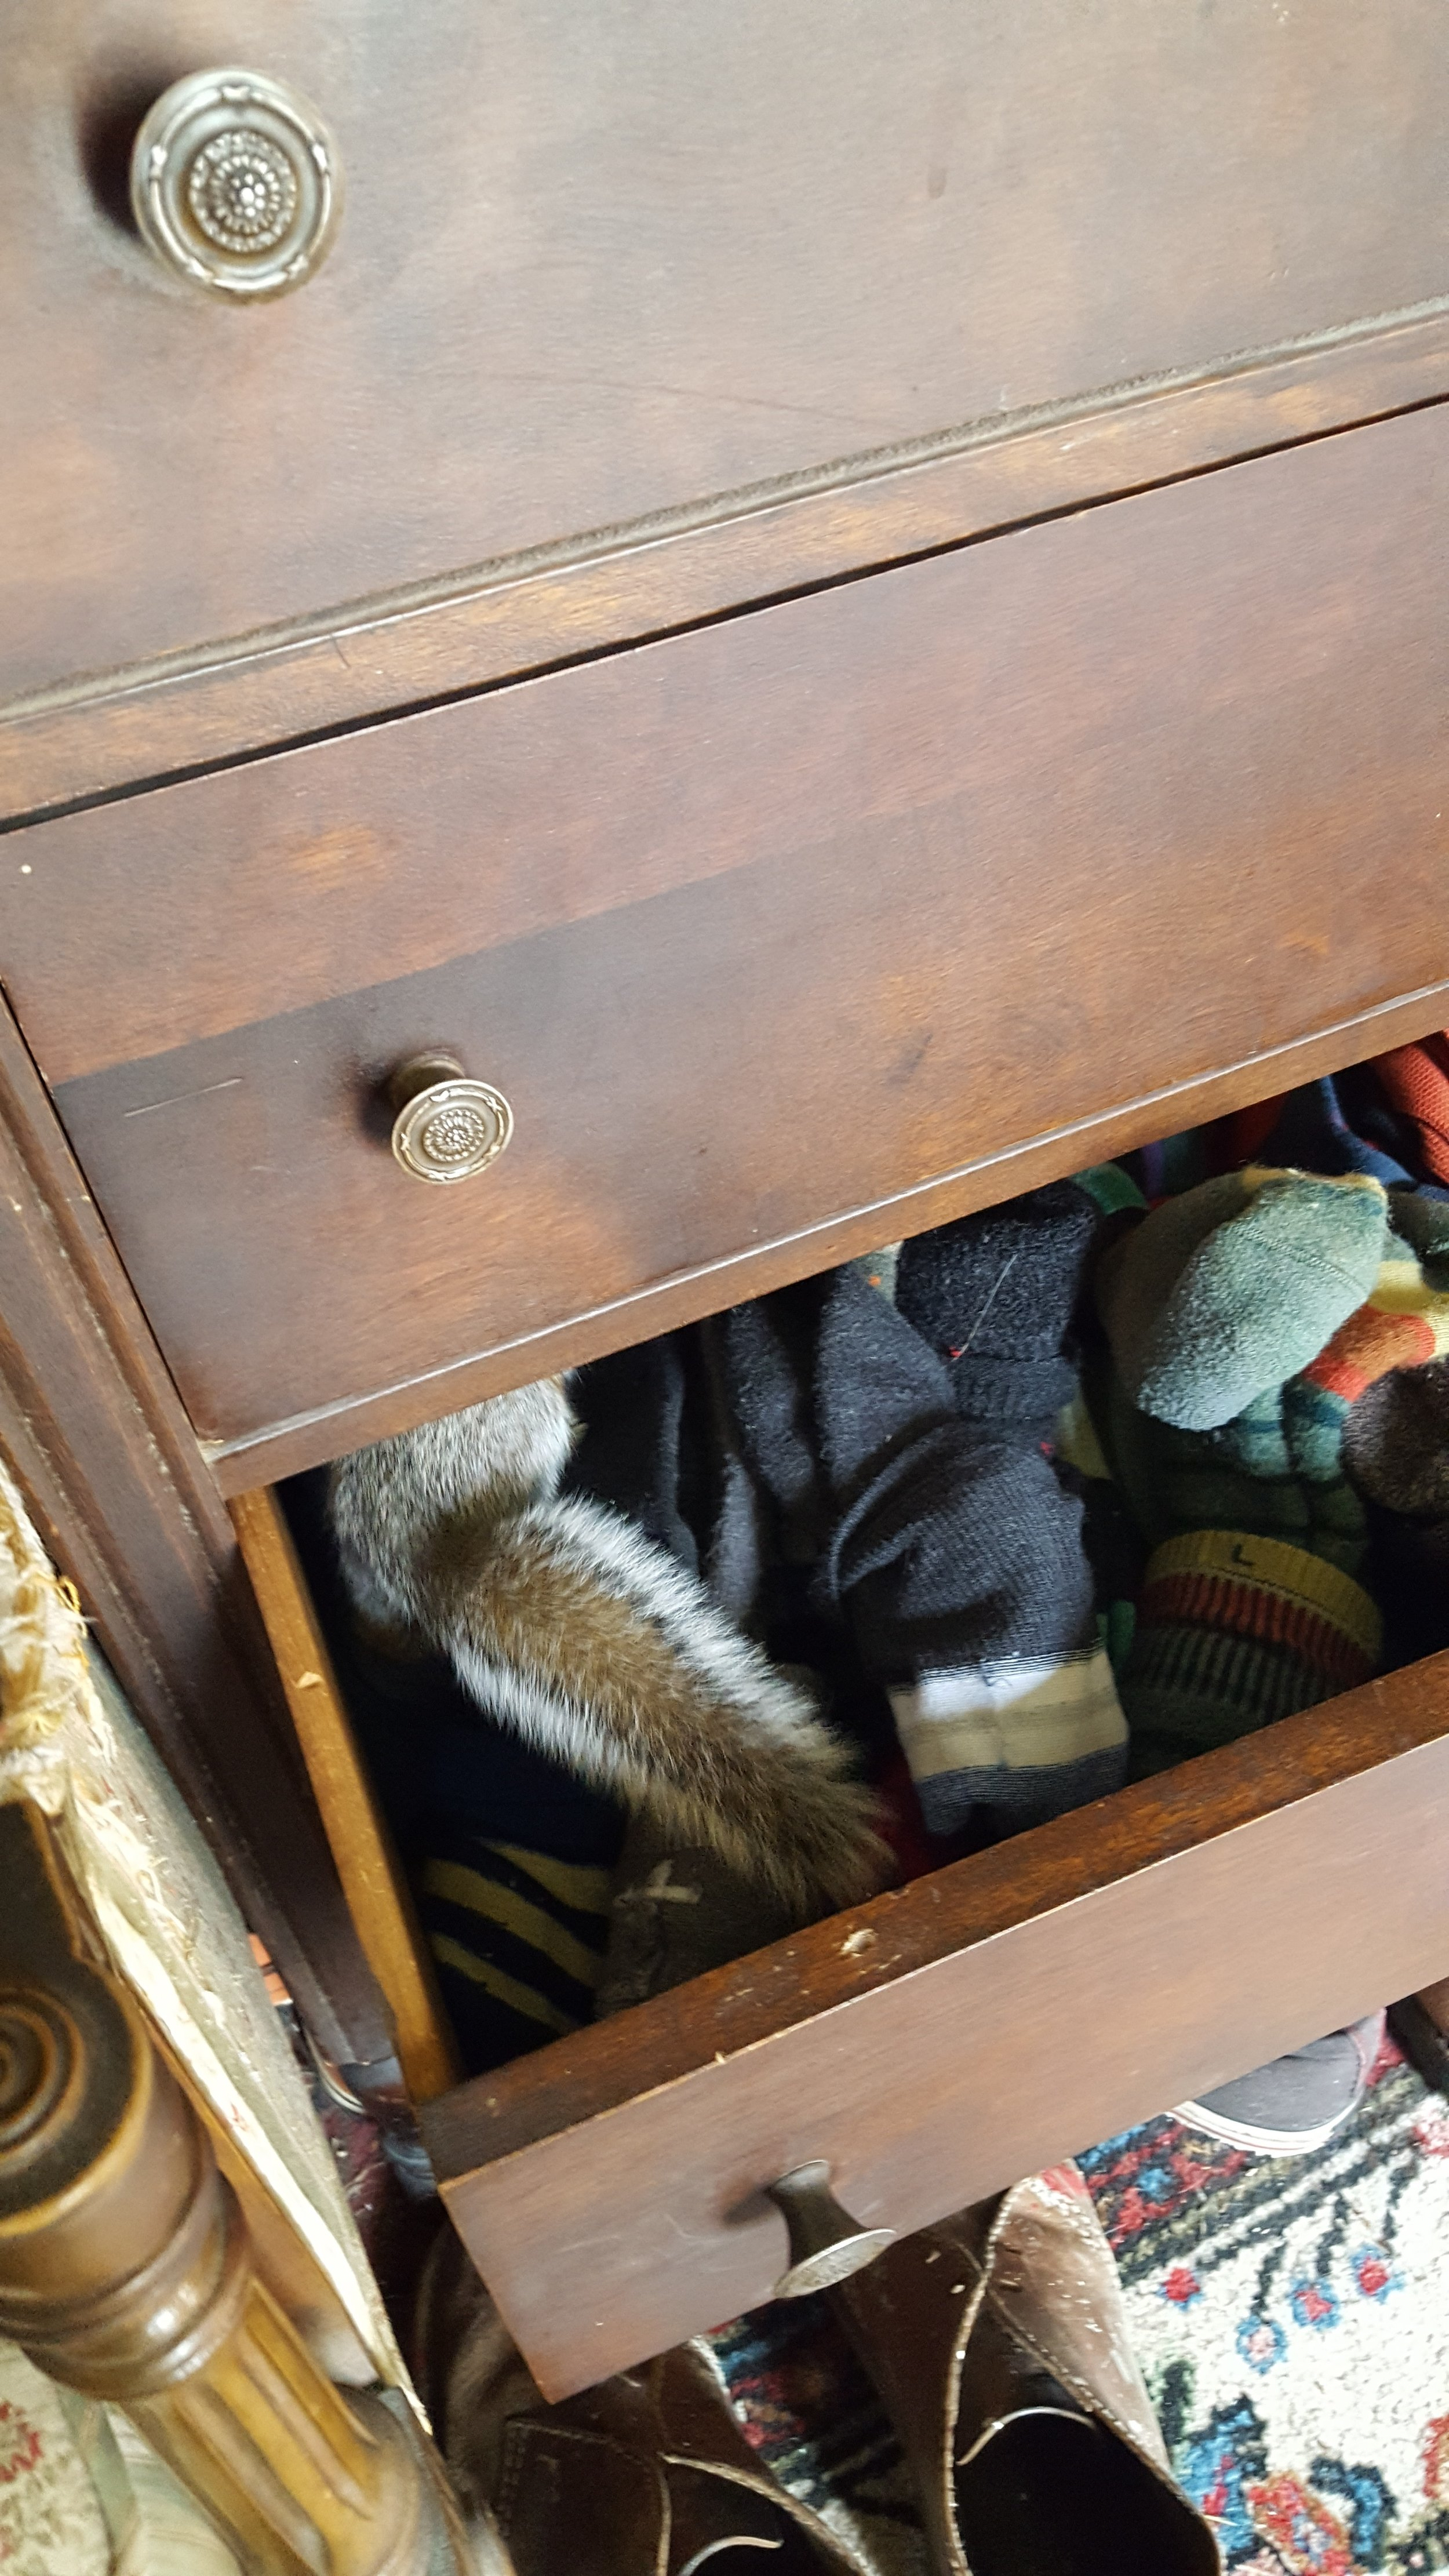 Always with the sock drawer.